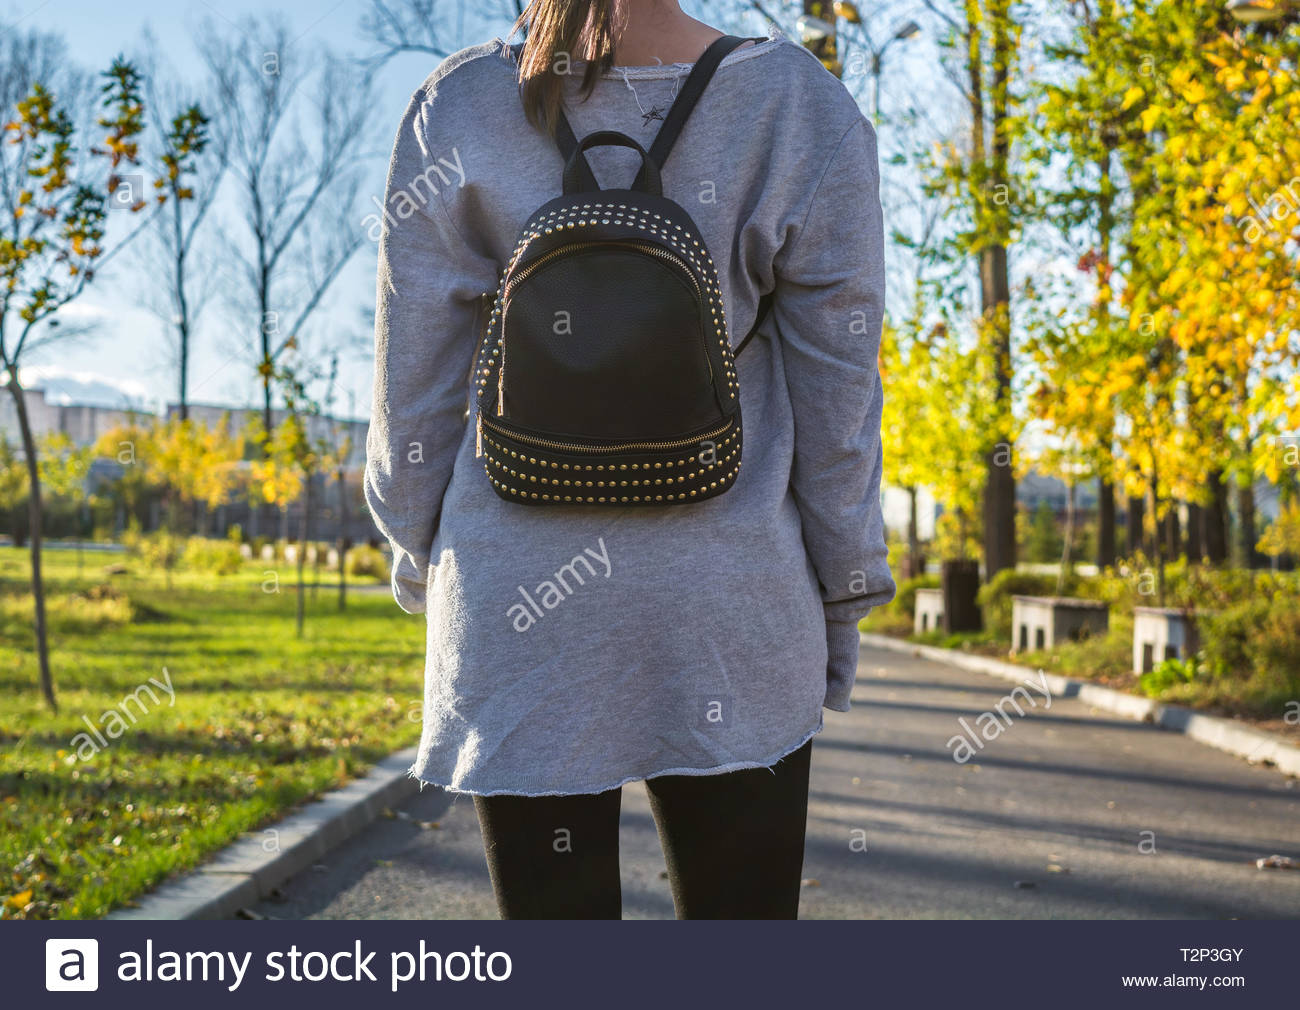 Young girl wearing gray sweatshirt and black yoga pants walking in the park. Black backpack with rhinestones as accessory. Casual style. - Stock Image